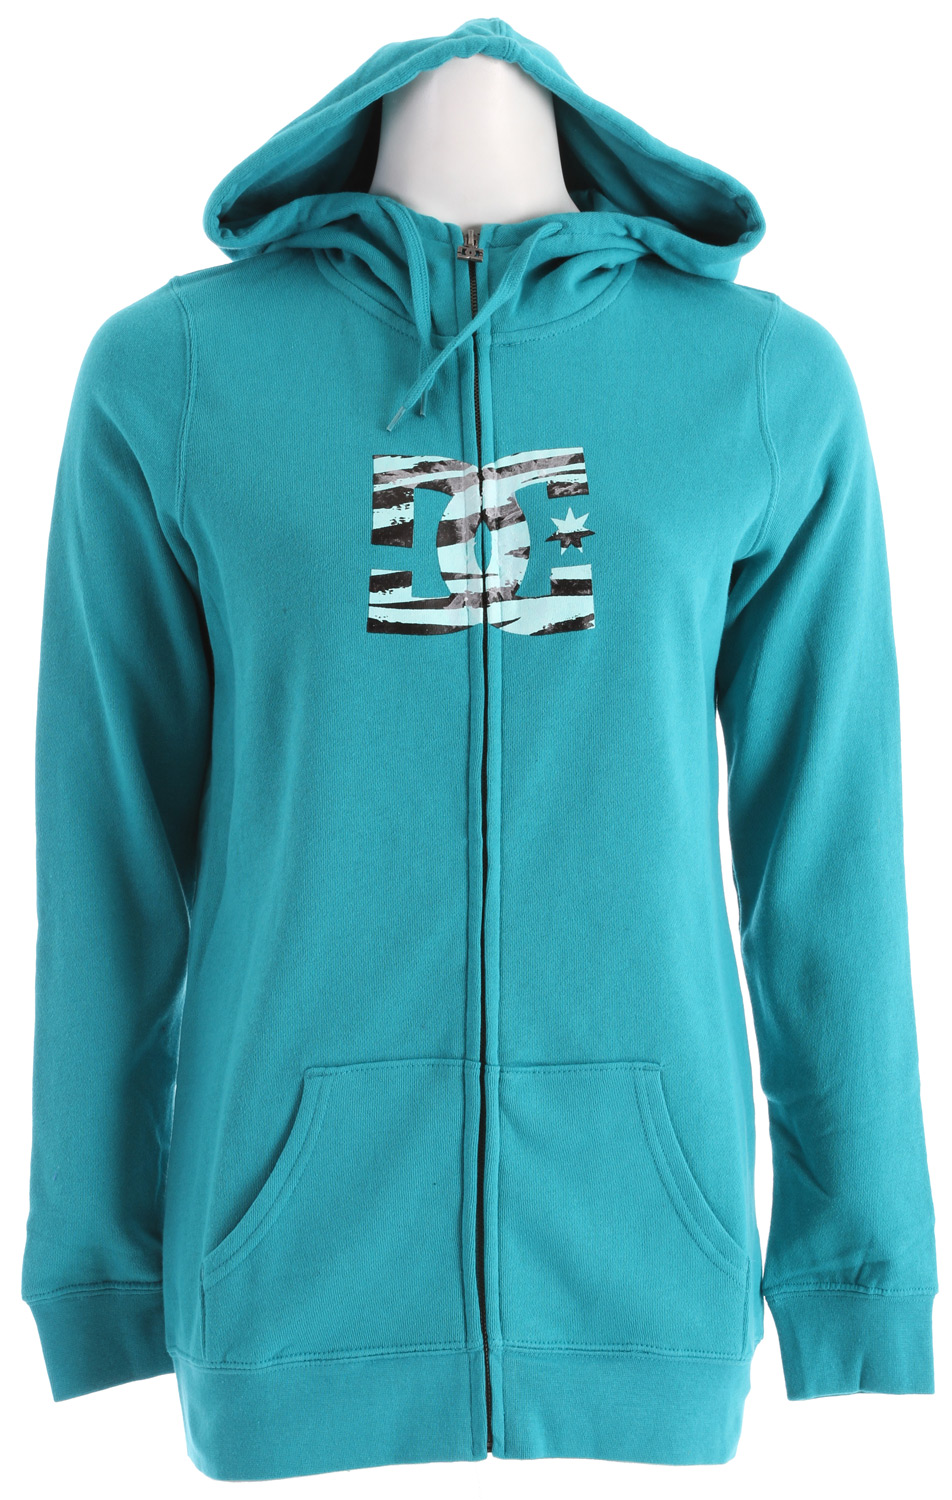 Skateboard Stay warm when the cold hits and the snow flies with this great, long-fit, fully front zippered DC Snow Fill FZ Hoodie for women. Made of a warm and cozy 80% cotton, 20% polyester blend, you'll keep the cold out while you stay warm inside it, and the colder it is, the more you'll appreciate its midweight insulation. Wear the DC Snow Fill Hoodie as an outer jacket itself to school, around town, or anywhere you want to be warm. Even wear it under a shell for increased warmth and water resistance, either way, you'll be as toasty as you want to be.Key Features of the DC Snow FZ Hoodie:  Long fit fleece with full zip hood  80% cotton / 20% polyester - $32.95